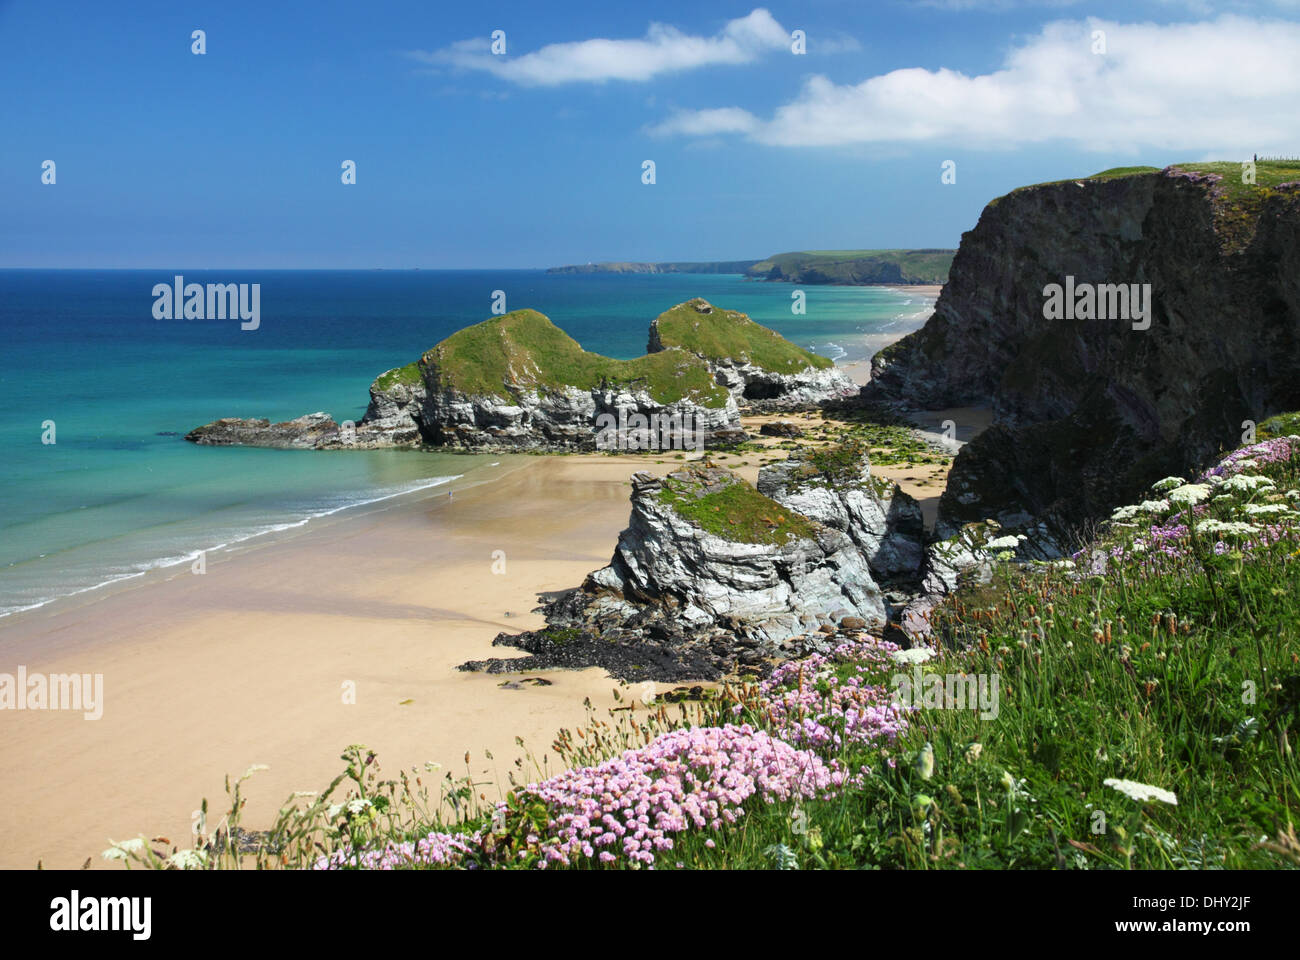 Pink thrift and a wide sandy beach with turquoise sea and cliffs. - Stock Image